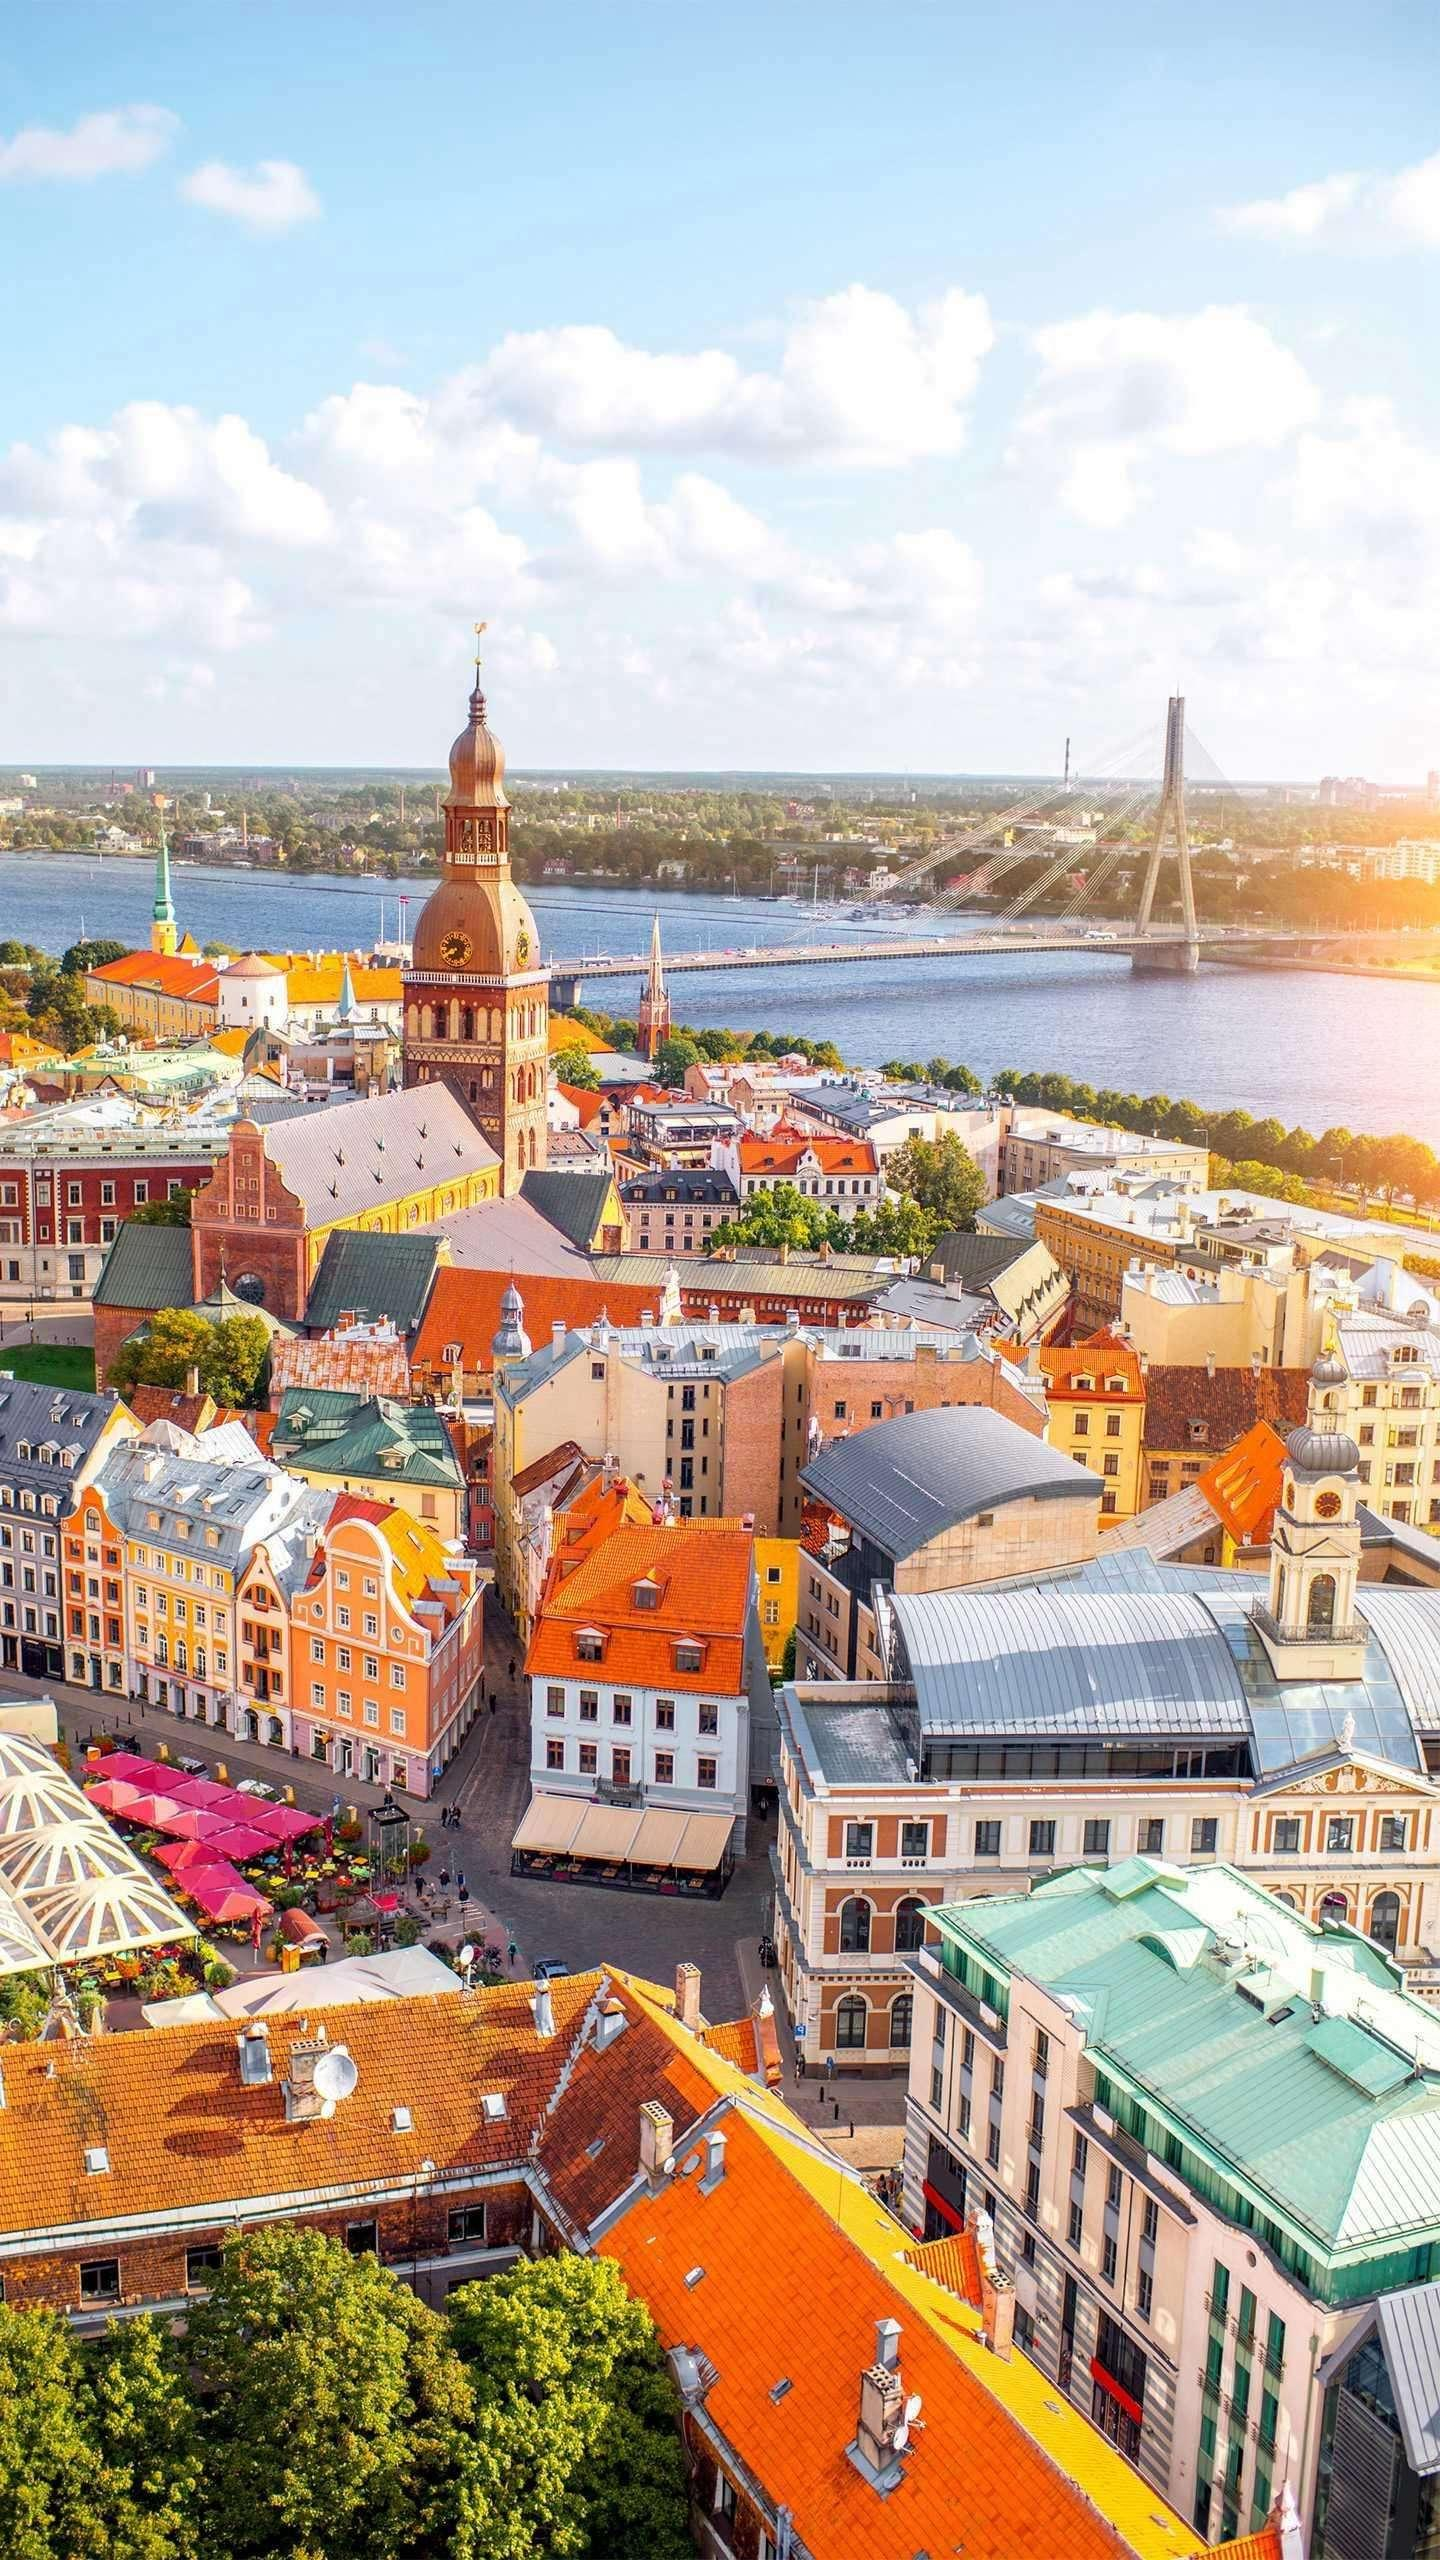 """The capital of Latvia: Riga. Latvia is also known as the """"Lung of Europe"""", and its capital, Riga, is known as the heart of the Baltic Sea."""